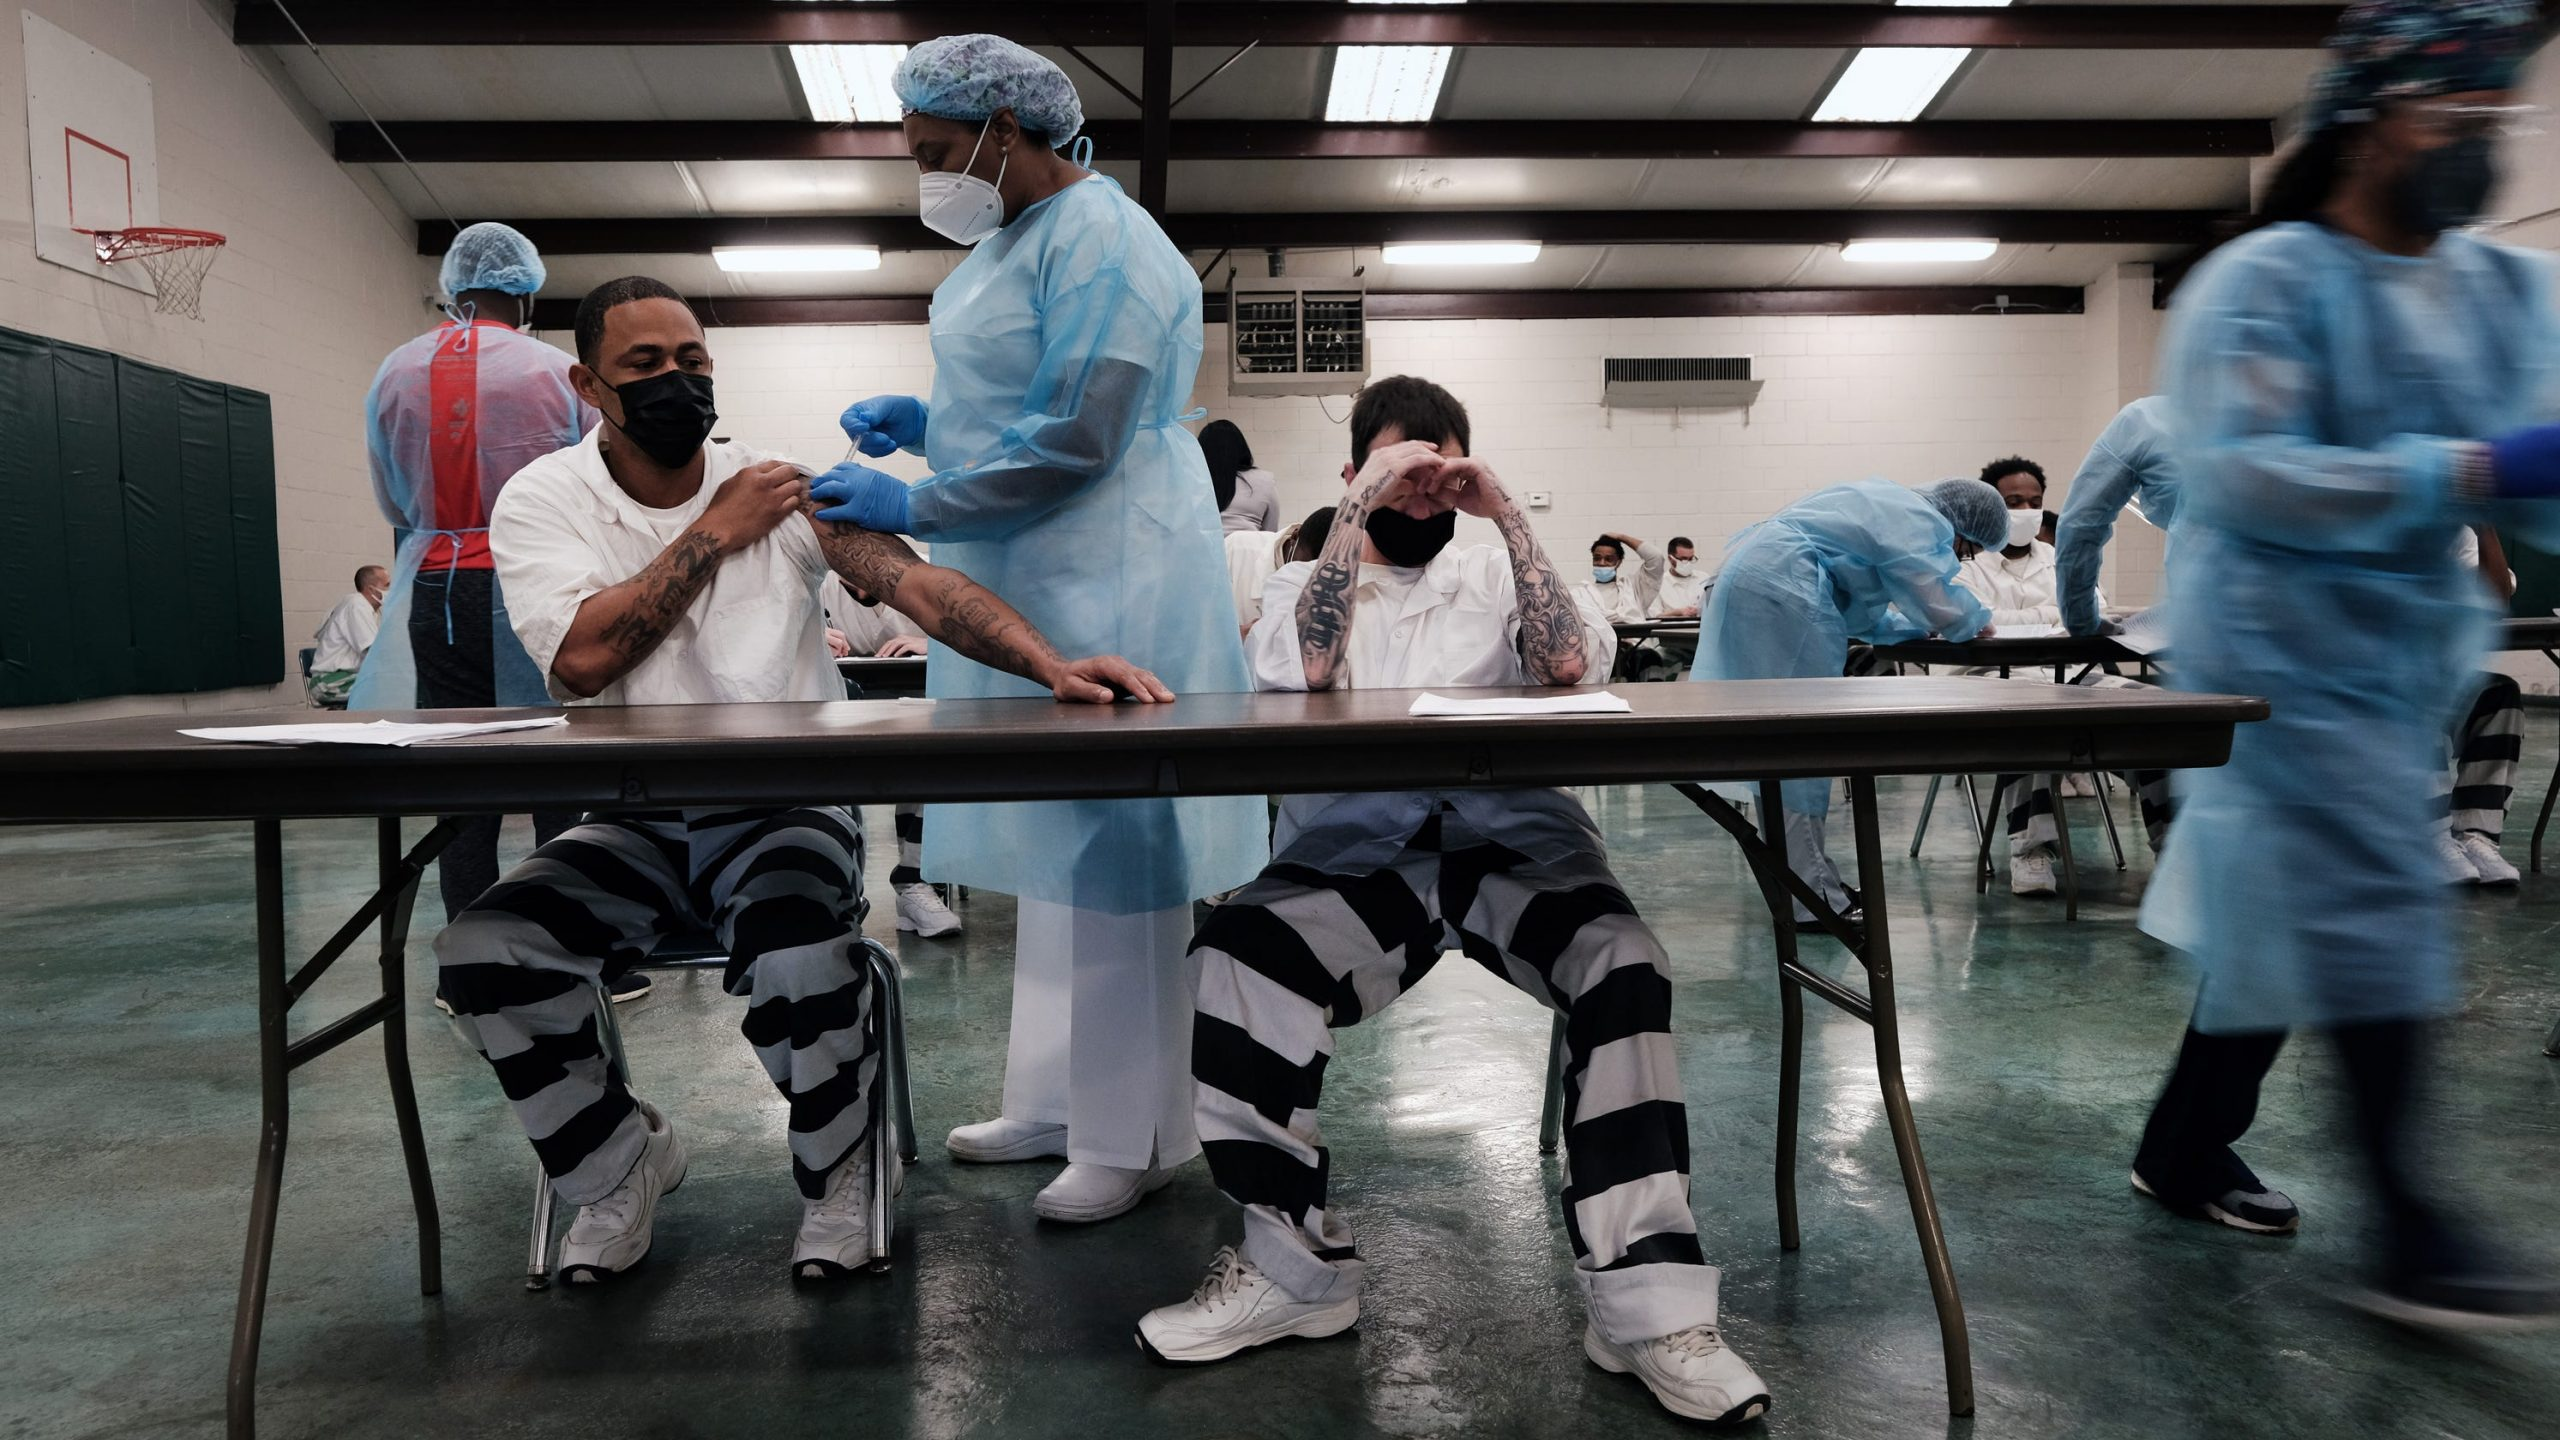 afraid-of-dying-in-here-how-inmates-fought-for-covid-vaccinations-protections-after-jails-and-prisons-failed-to-protect-them.jpeg